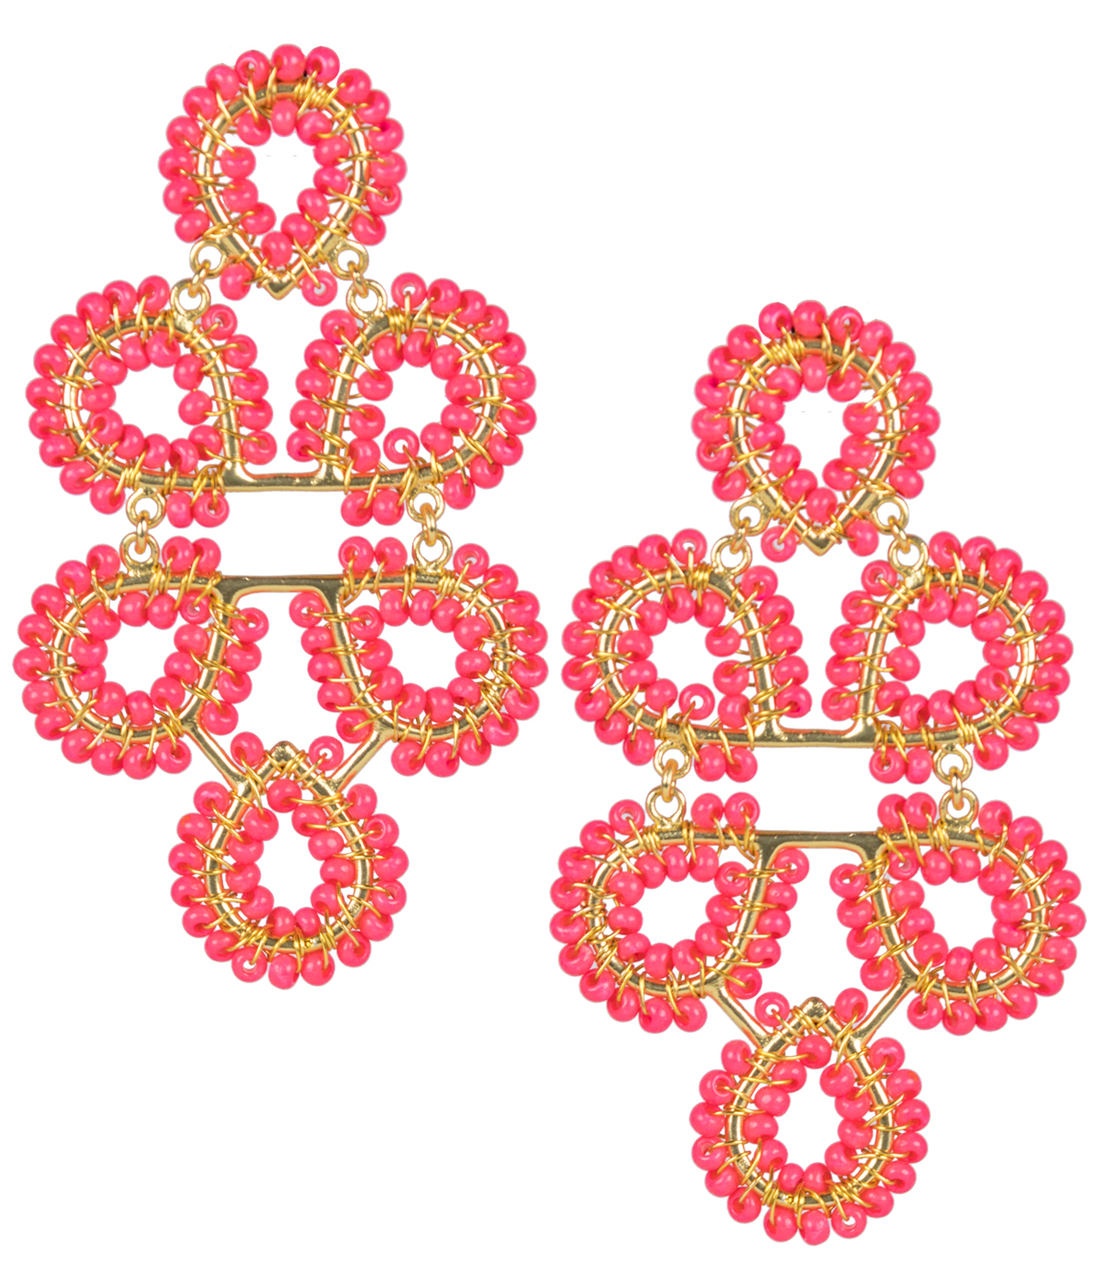 Ginger Pink Earrings by LISI LERCH